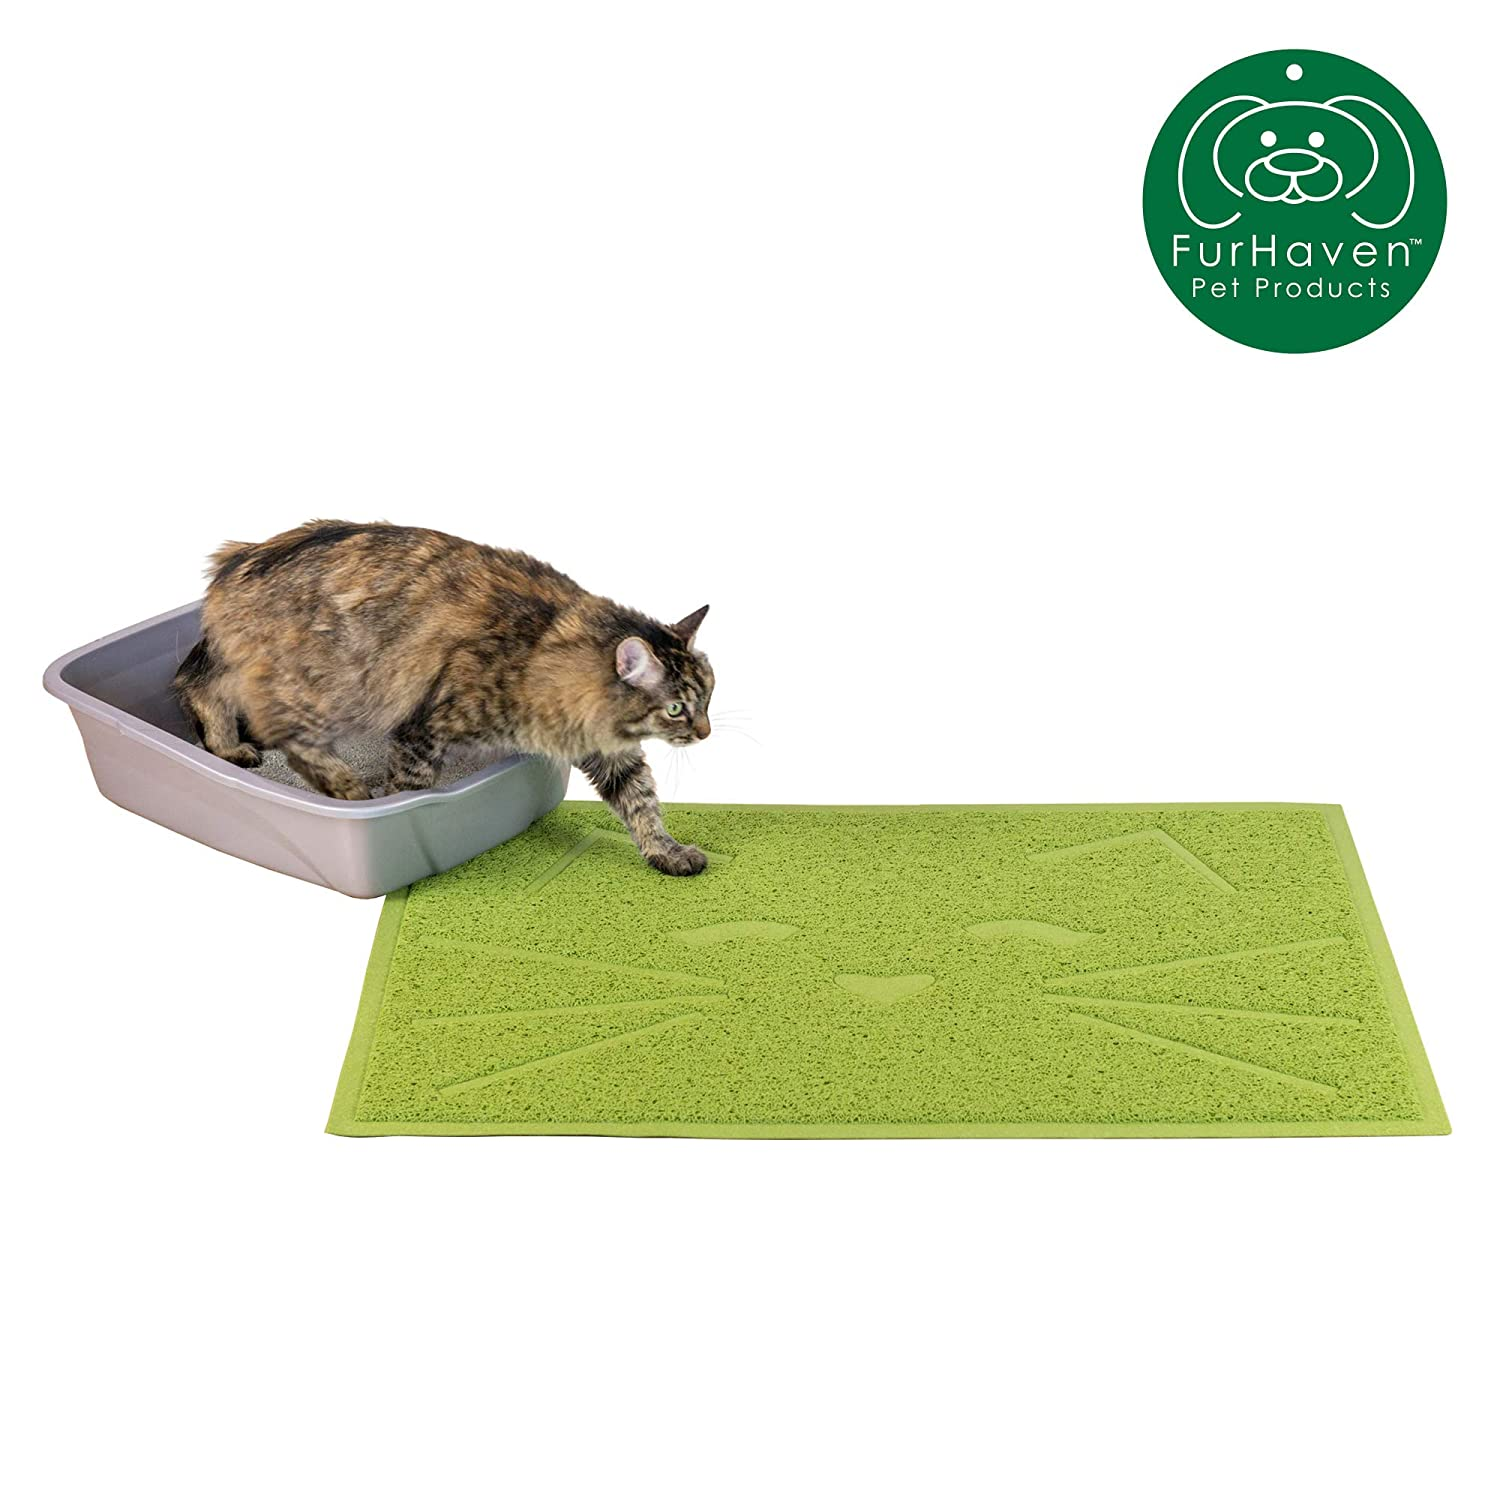 Furhaven Pet Food Mat | Tiger Tough Tidy Paws Litter & Dining Food Mat for Dogs & Cats, Fresh Catnip (Green), One Size